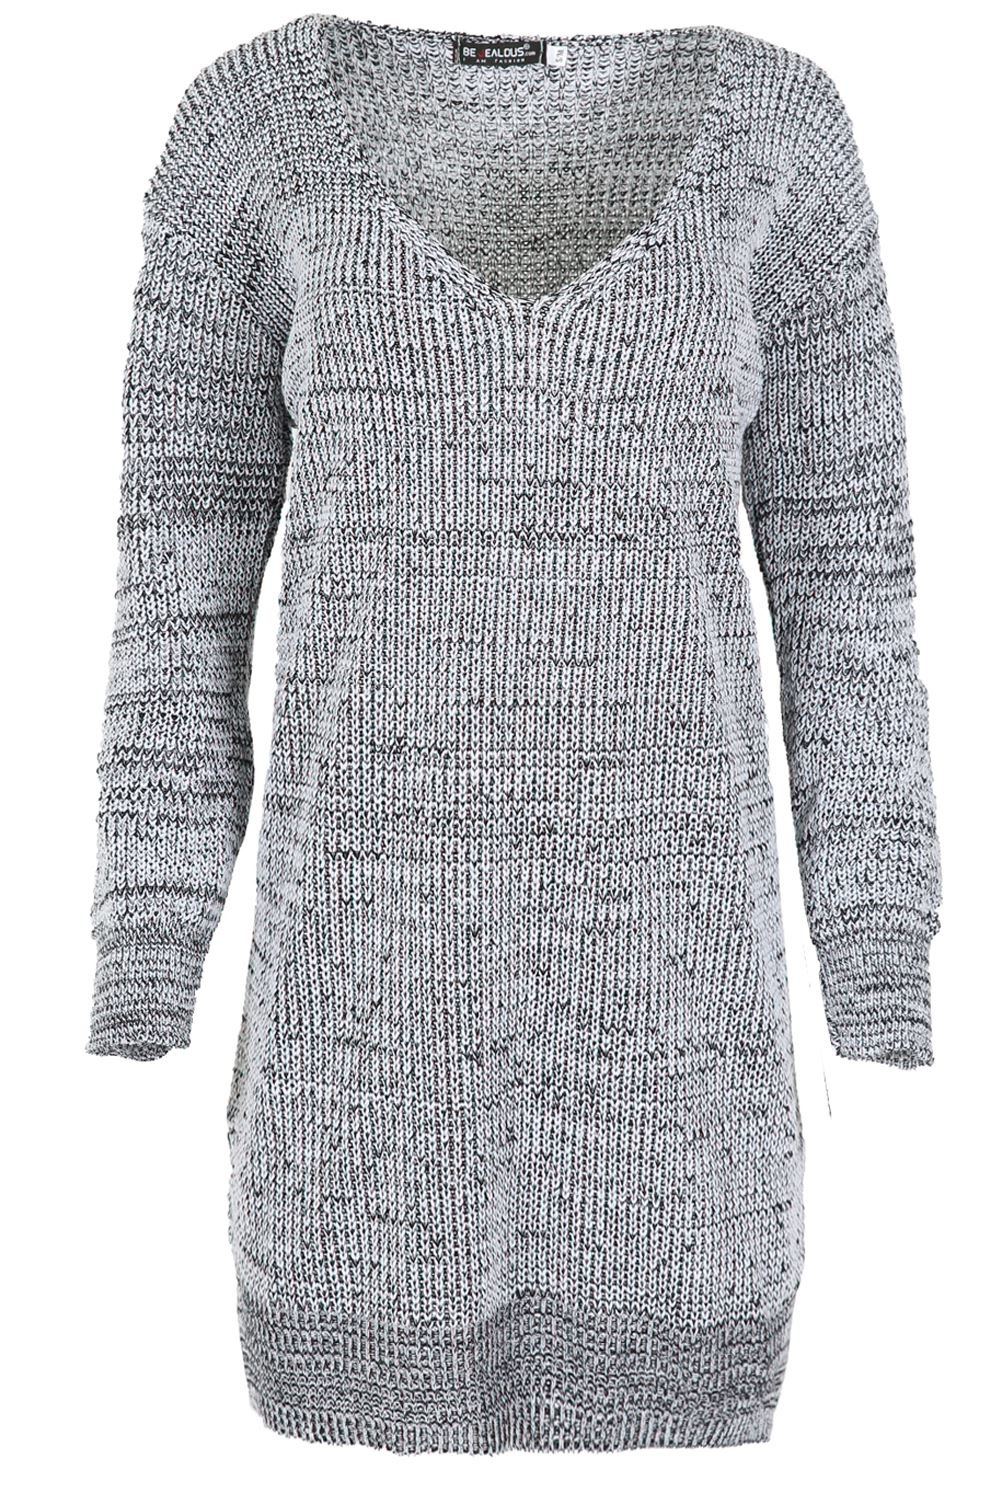 Womens-Oversized-Jumper-Ladies-Dress-Long-Sleeve-Chunky-Knitted-Long-Sweater-Top thumbnail 57